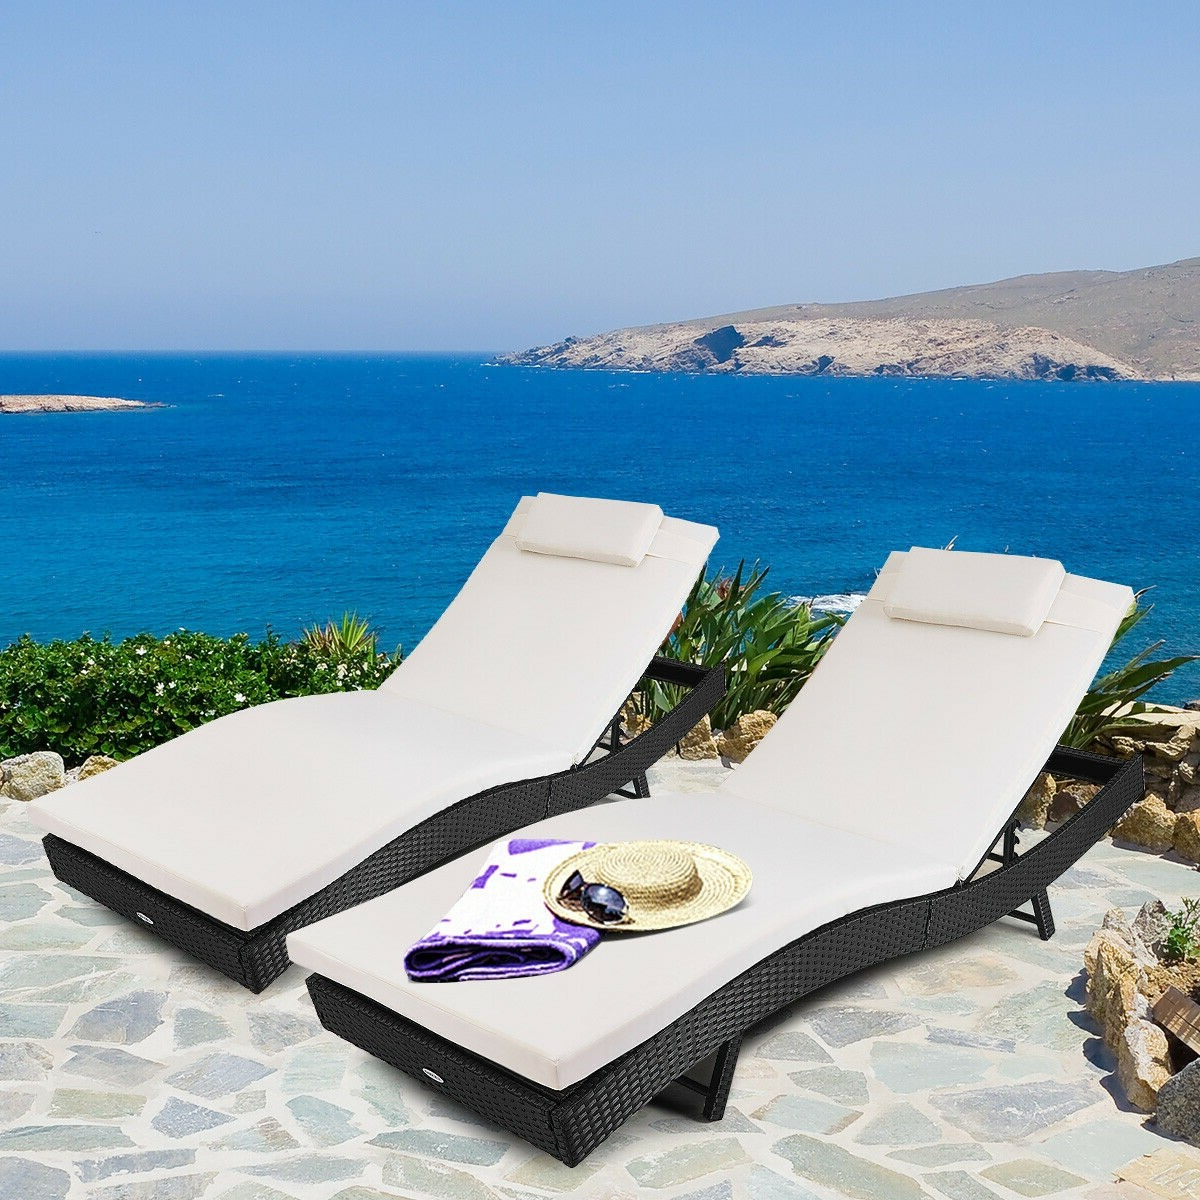 Details About Chaise Lounge Chair Adjustable Outdoor Pool Patio Furniture  Pe Wicker W/cushion Within 2020 Outdoor Adjustable Rattan Wicker Chaise Pool Chairs With Cushions (View 7 of 25)